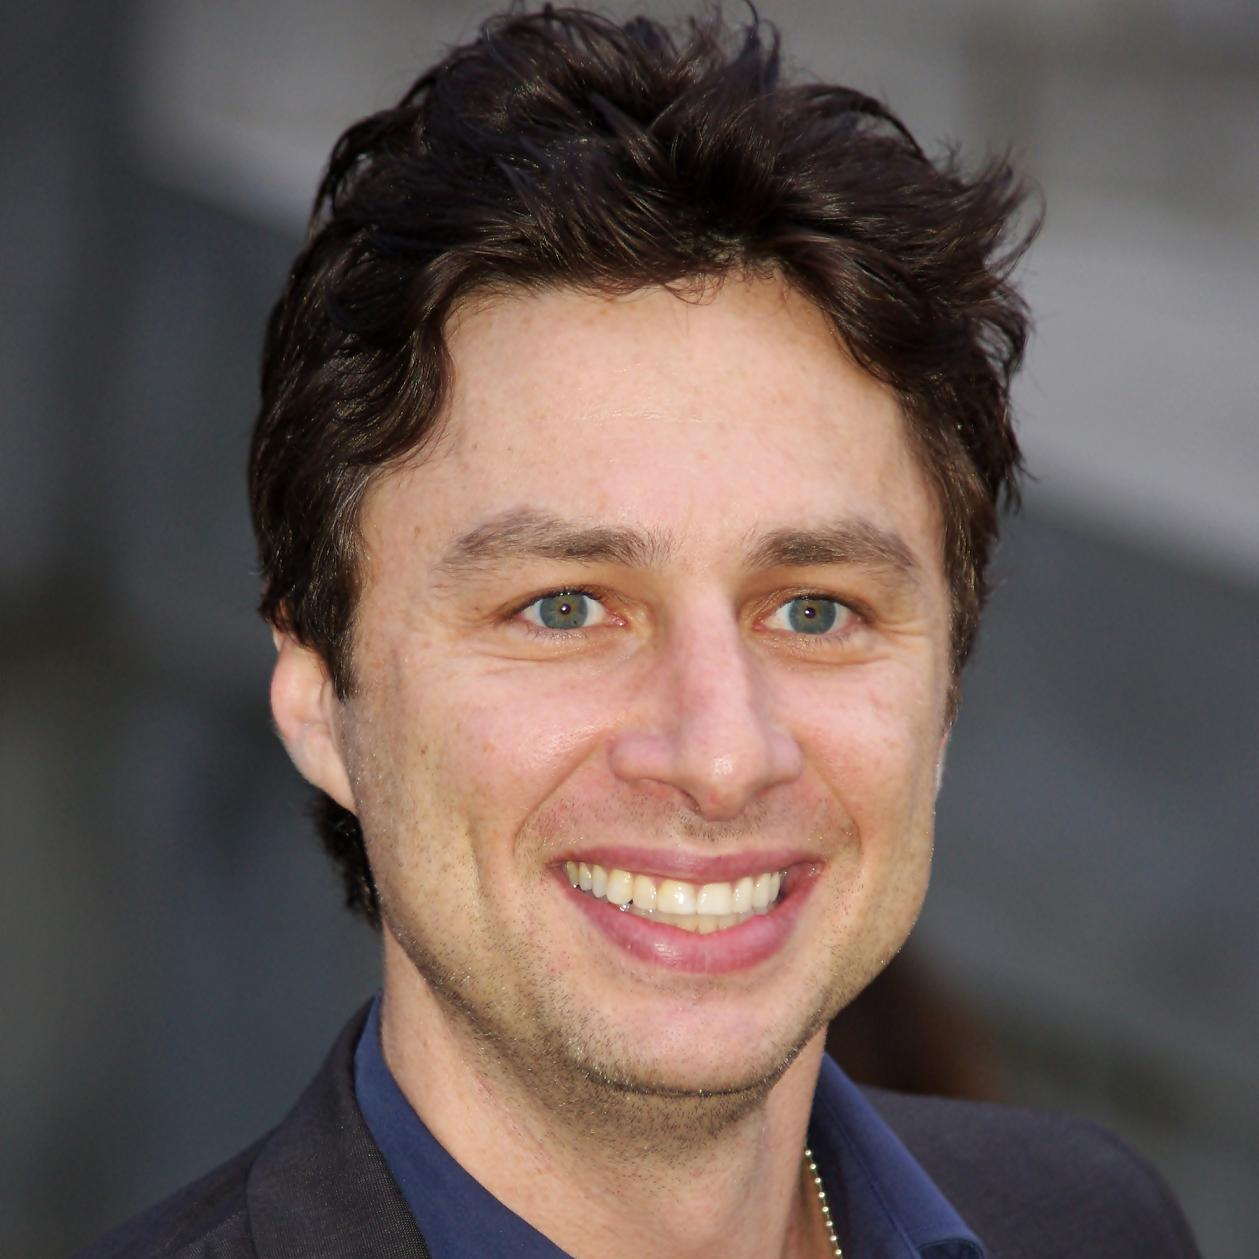 Zach Braff Bio, Net Worth, Facts